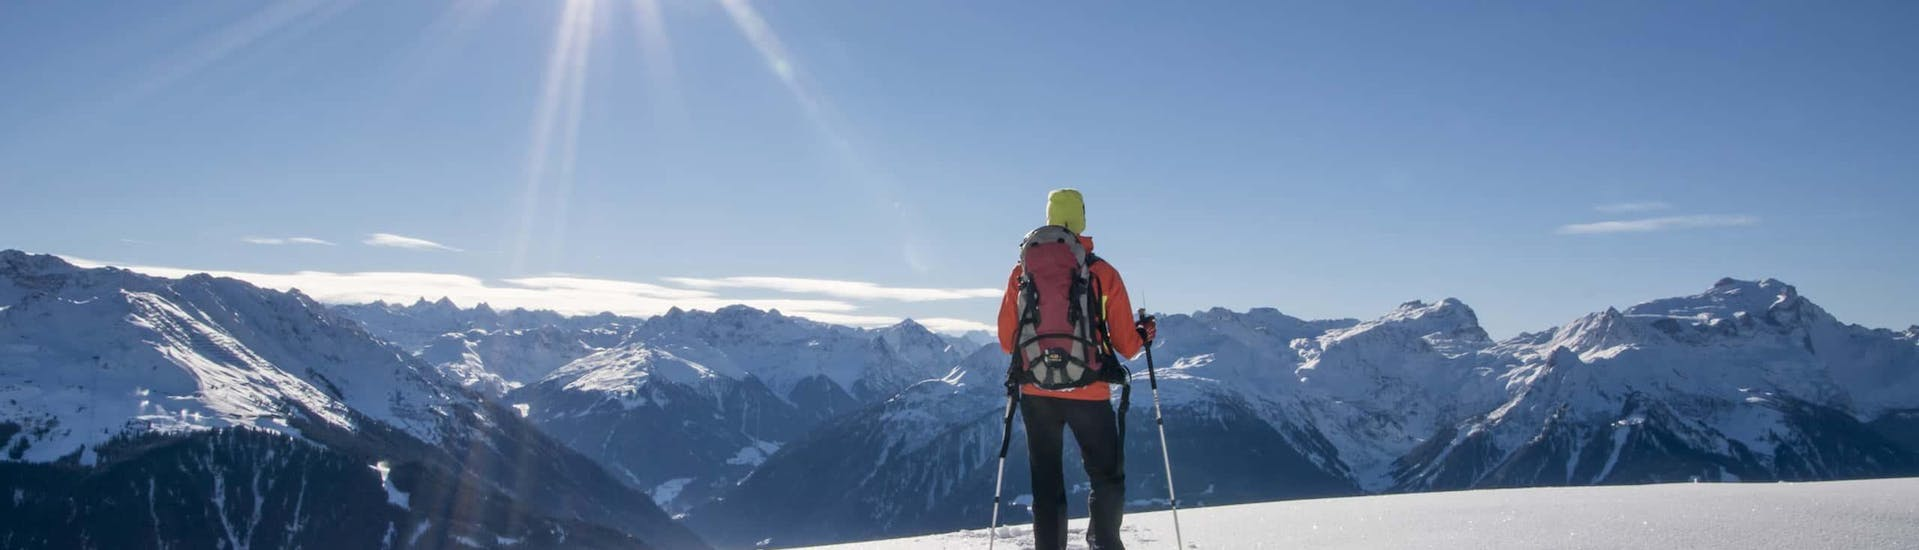 A hiker is overlooking the mountainous panorama while on one of the Snowshoeing Steigbachtal organised by Bergschule Kleinwalsertal.